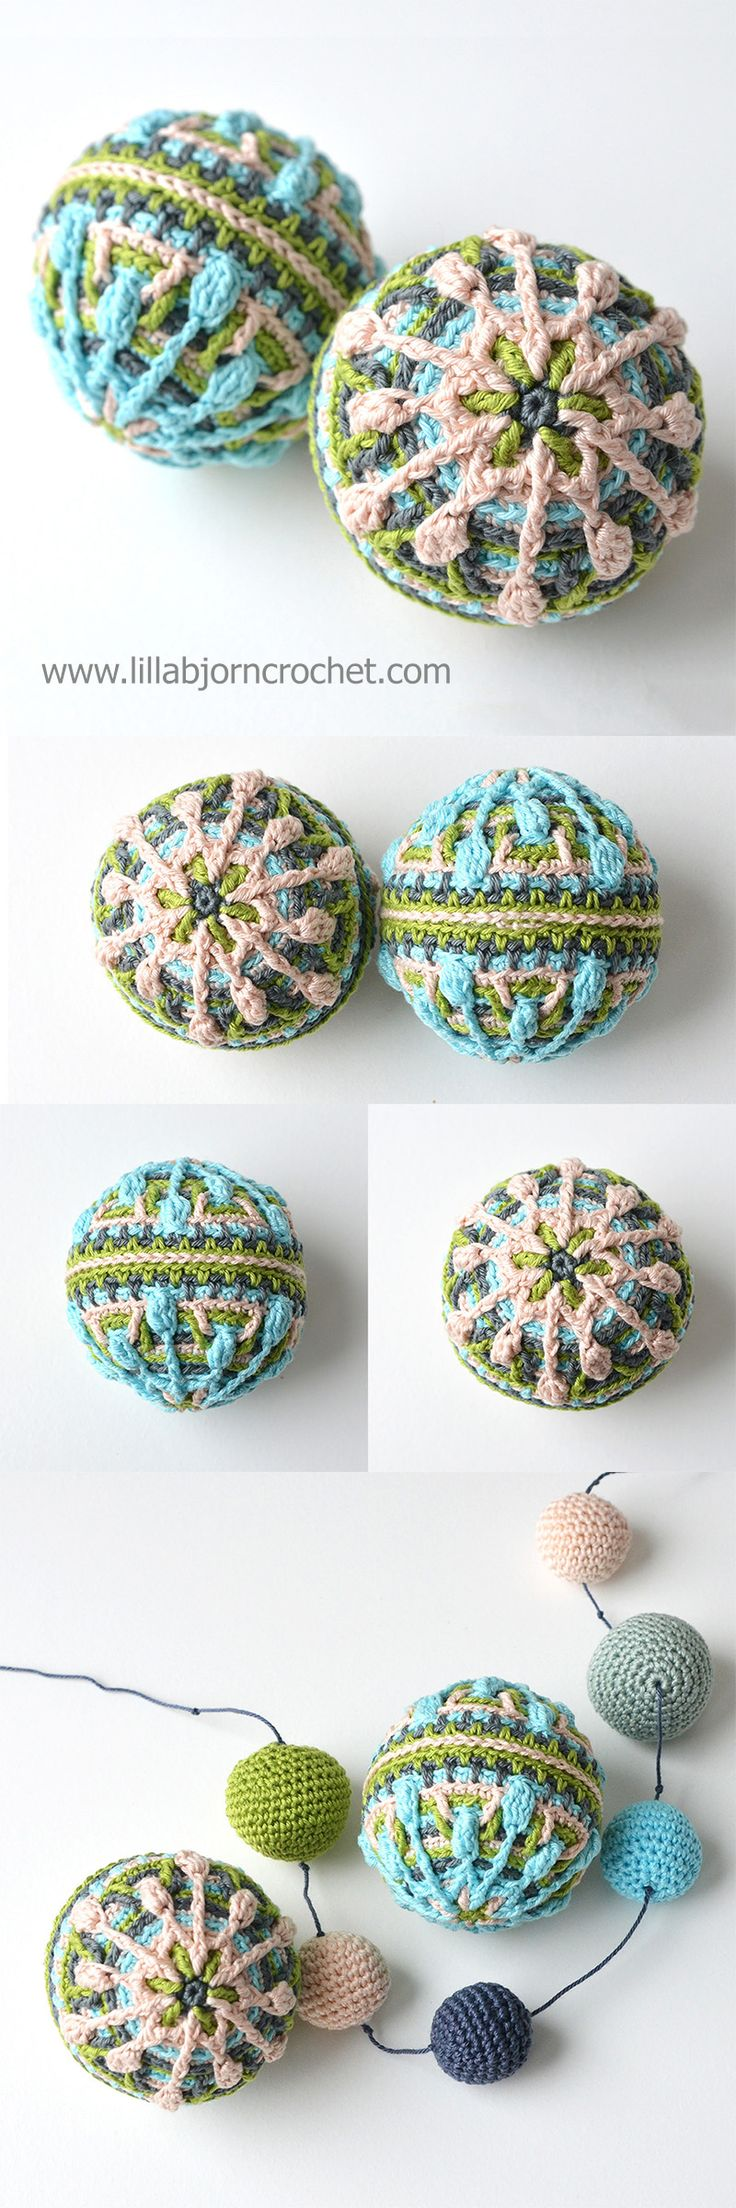 These snow crocheted baubles (in #overlay #crochet) will make a perfect Christmas decoration, hanging decorations for a nursery, and even pet toys! Pattern by Lilla Bjorn Crochet